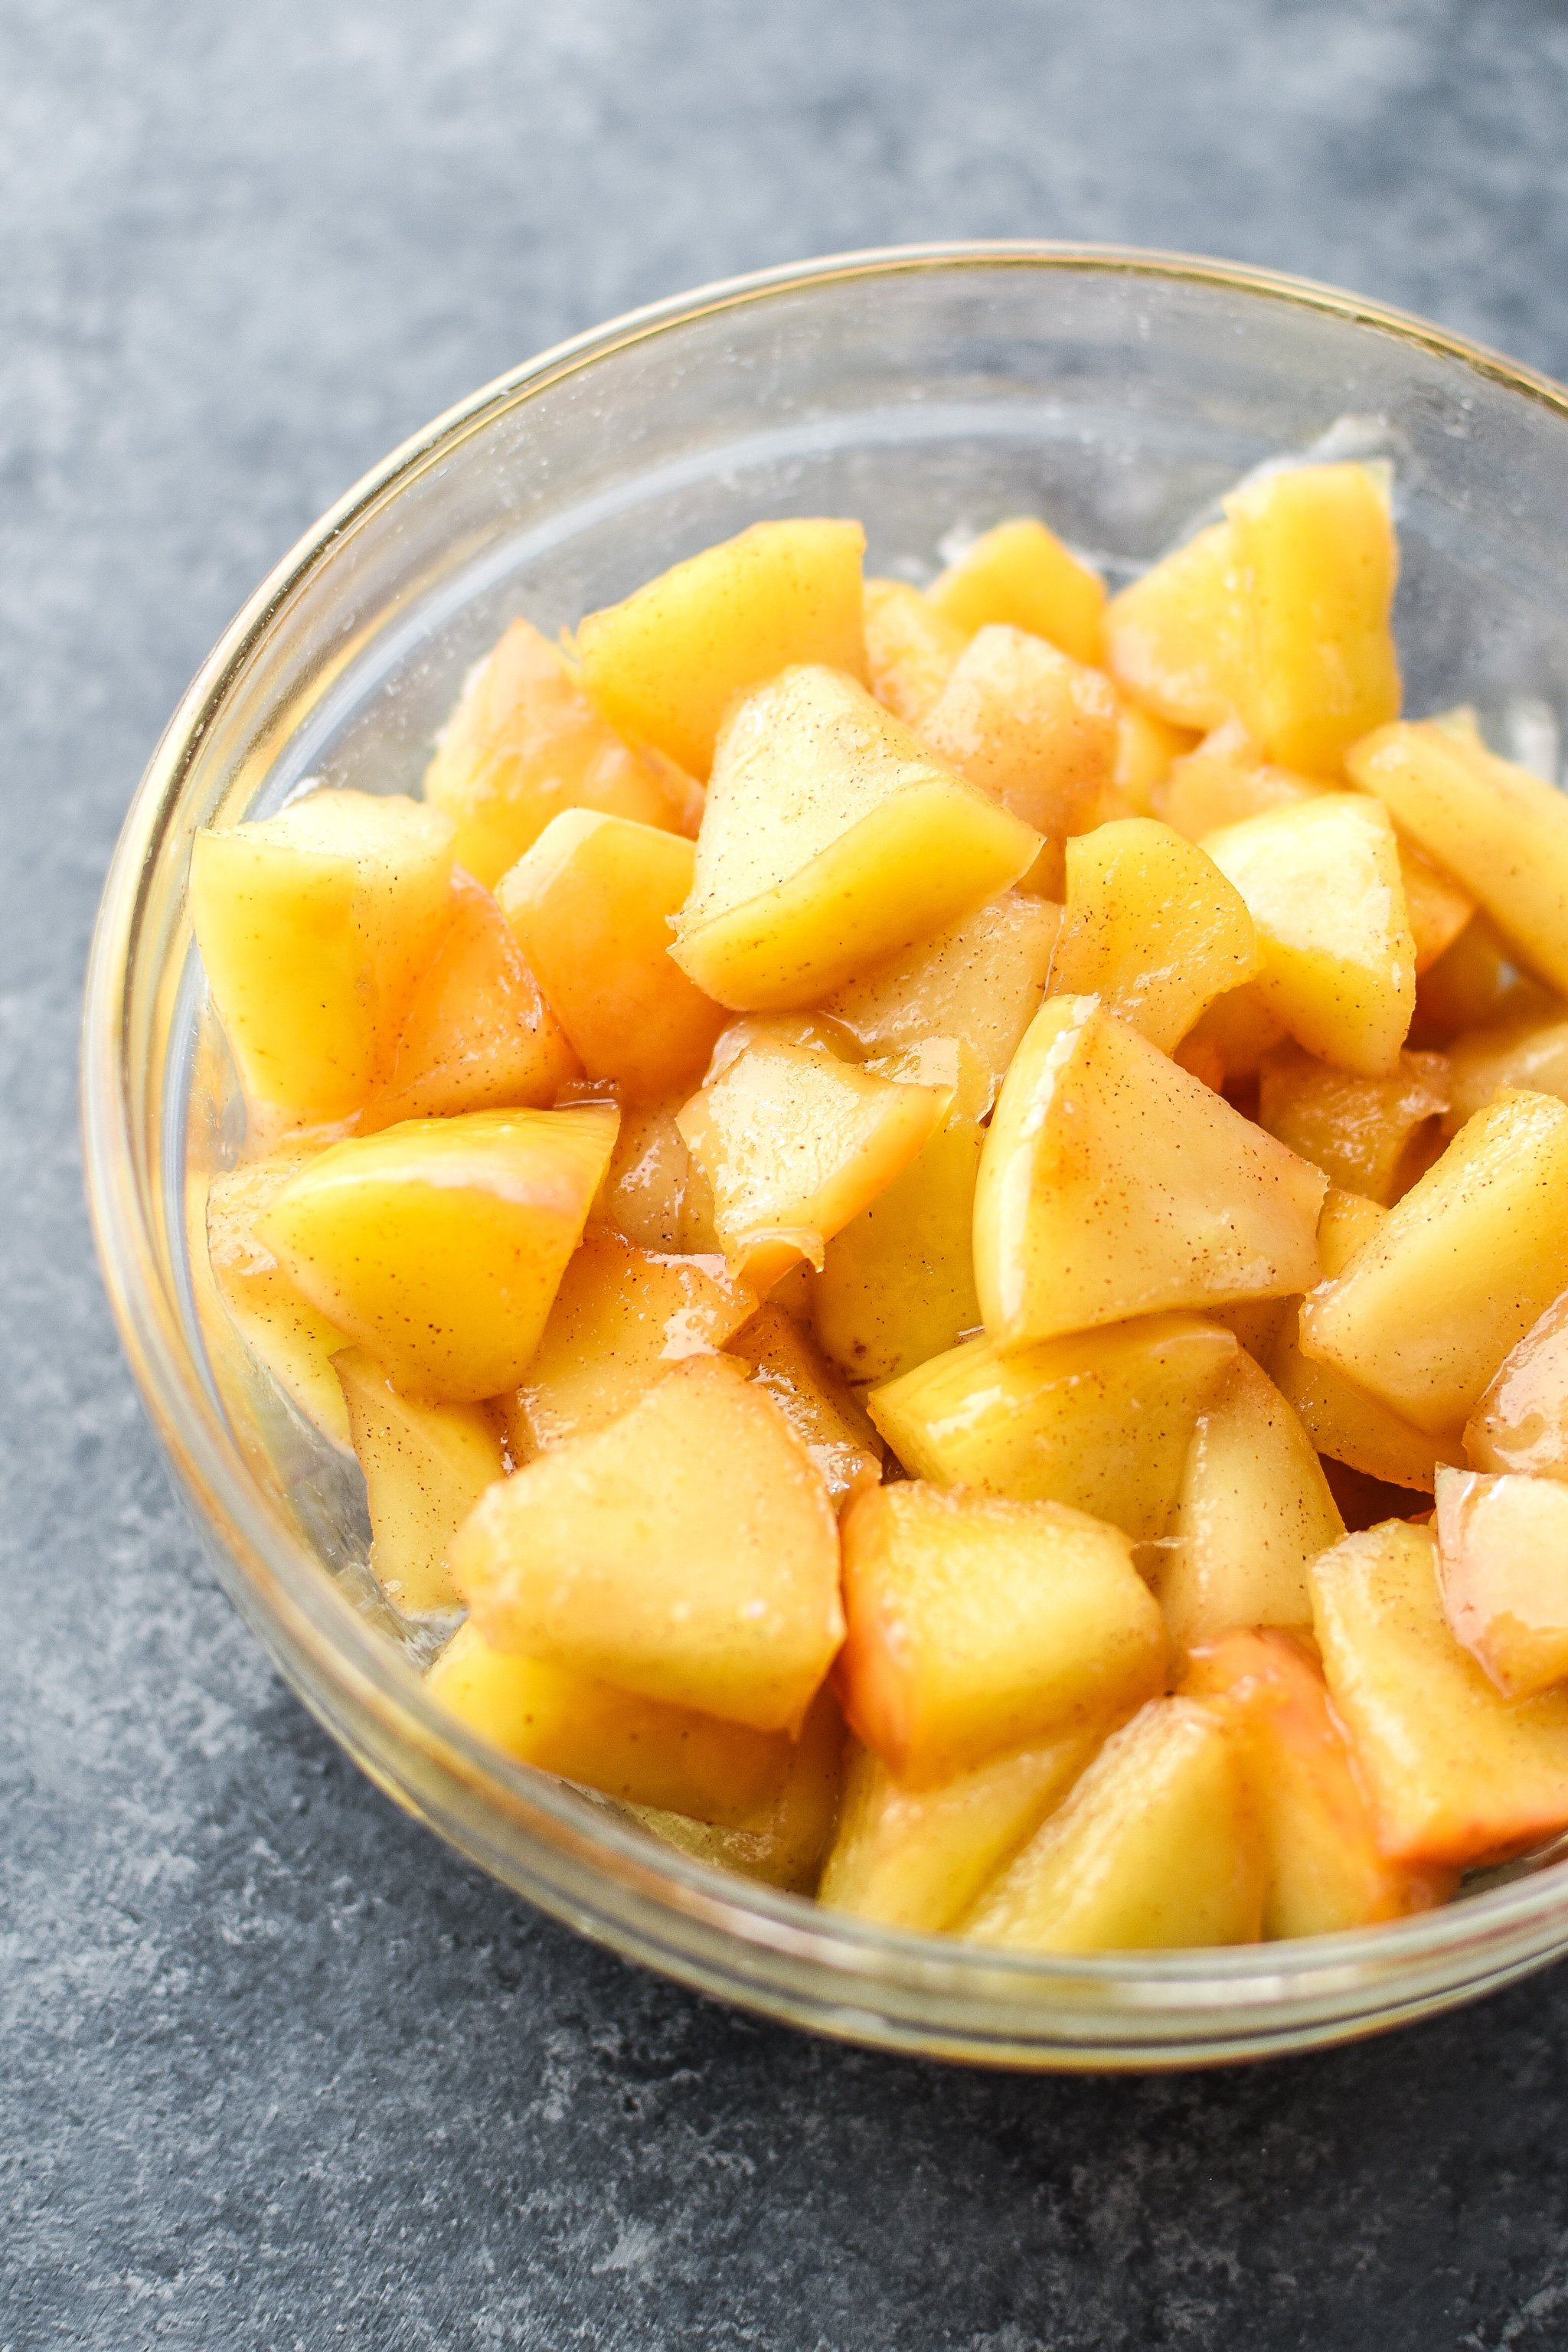 Sauteed apples with honey and cinnamon in a bowl.